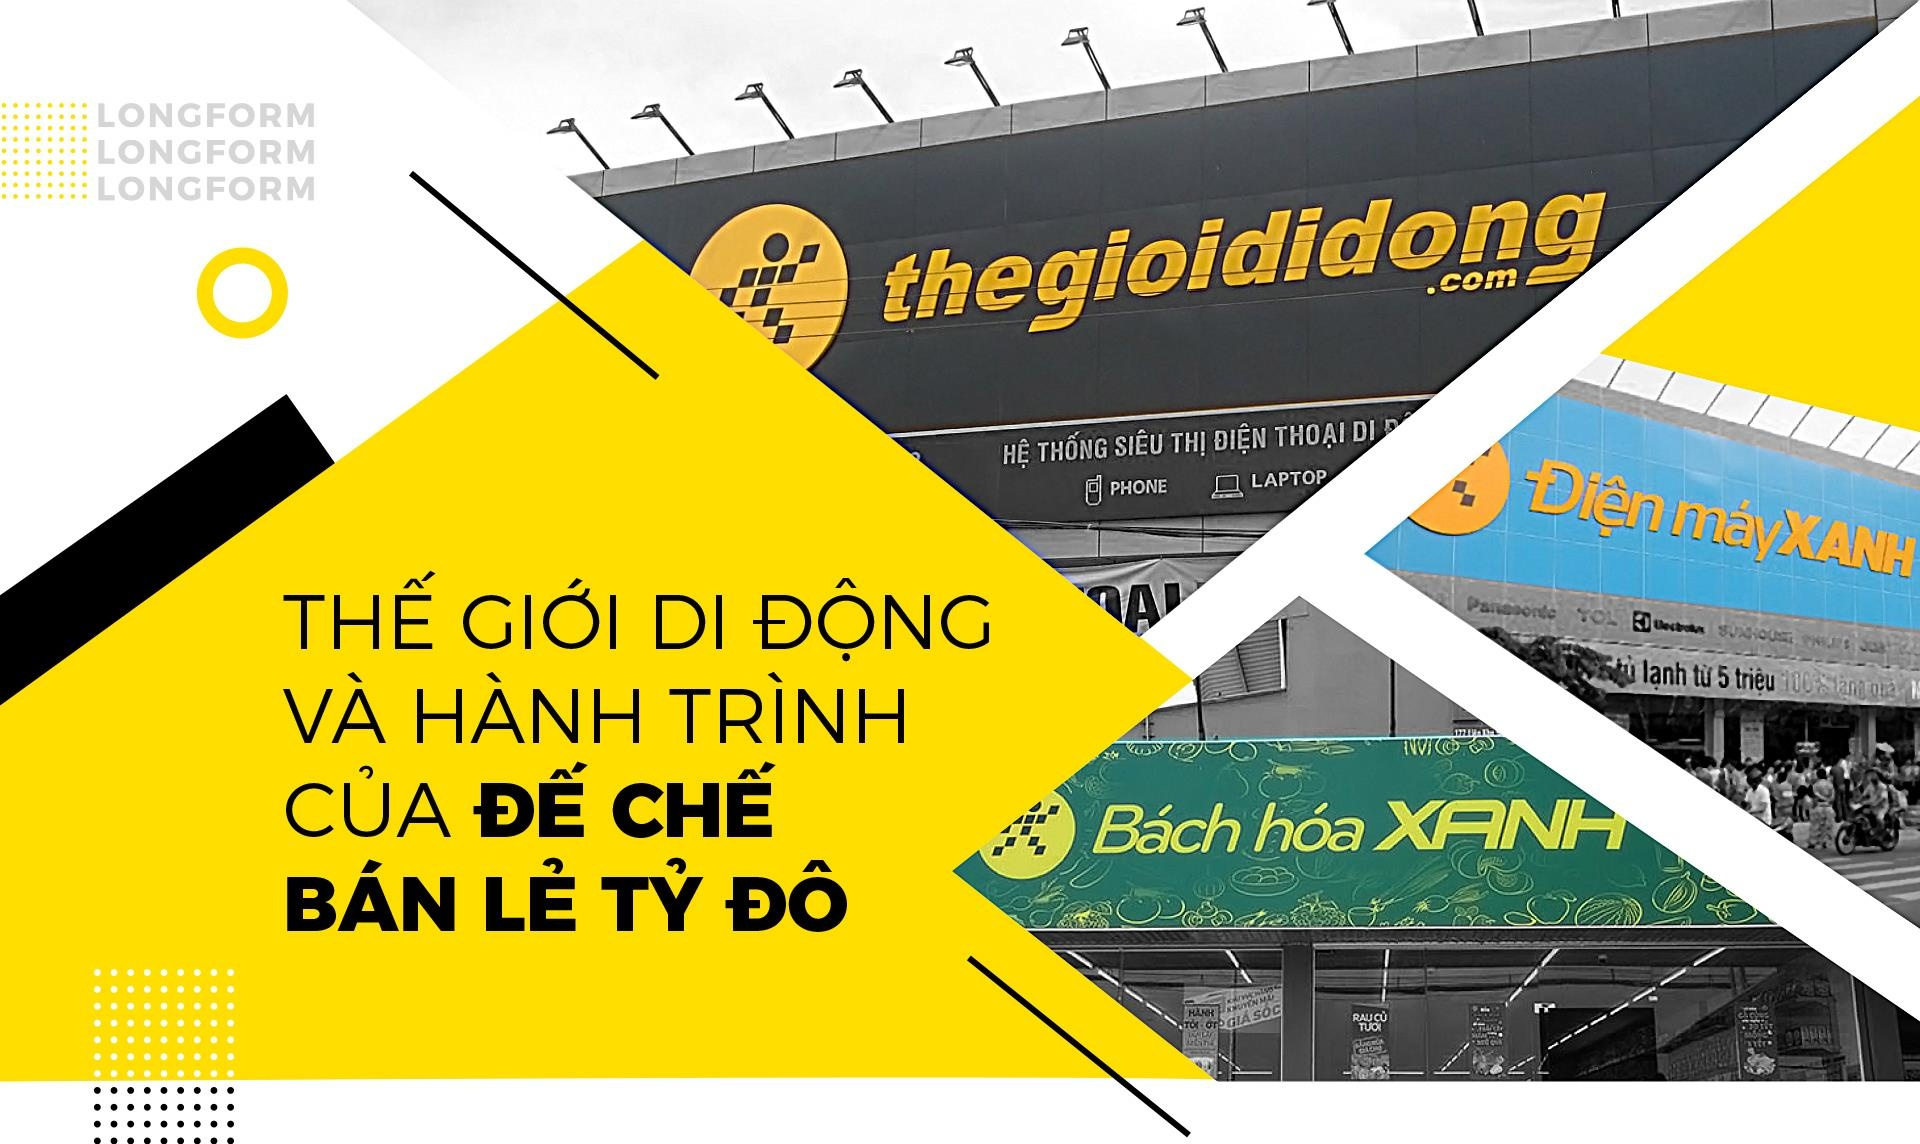 The Gioi Di Dong anh 2